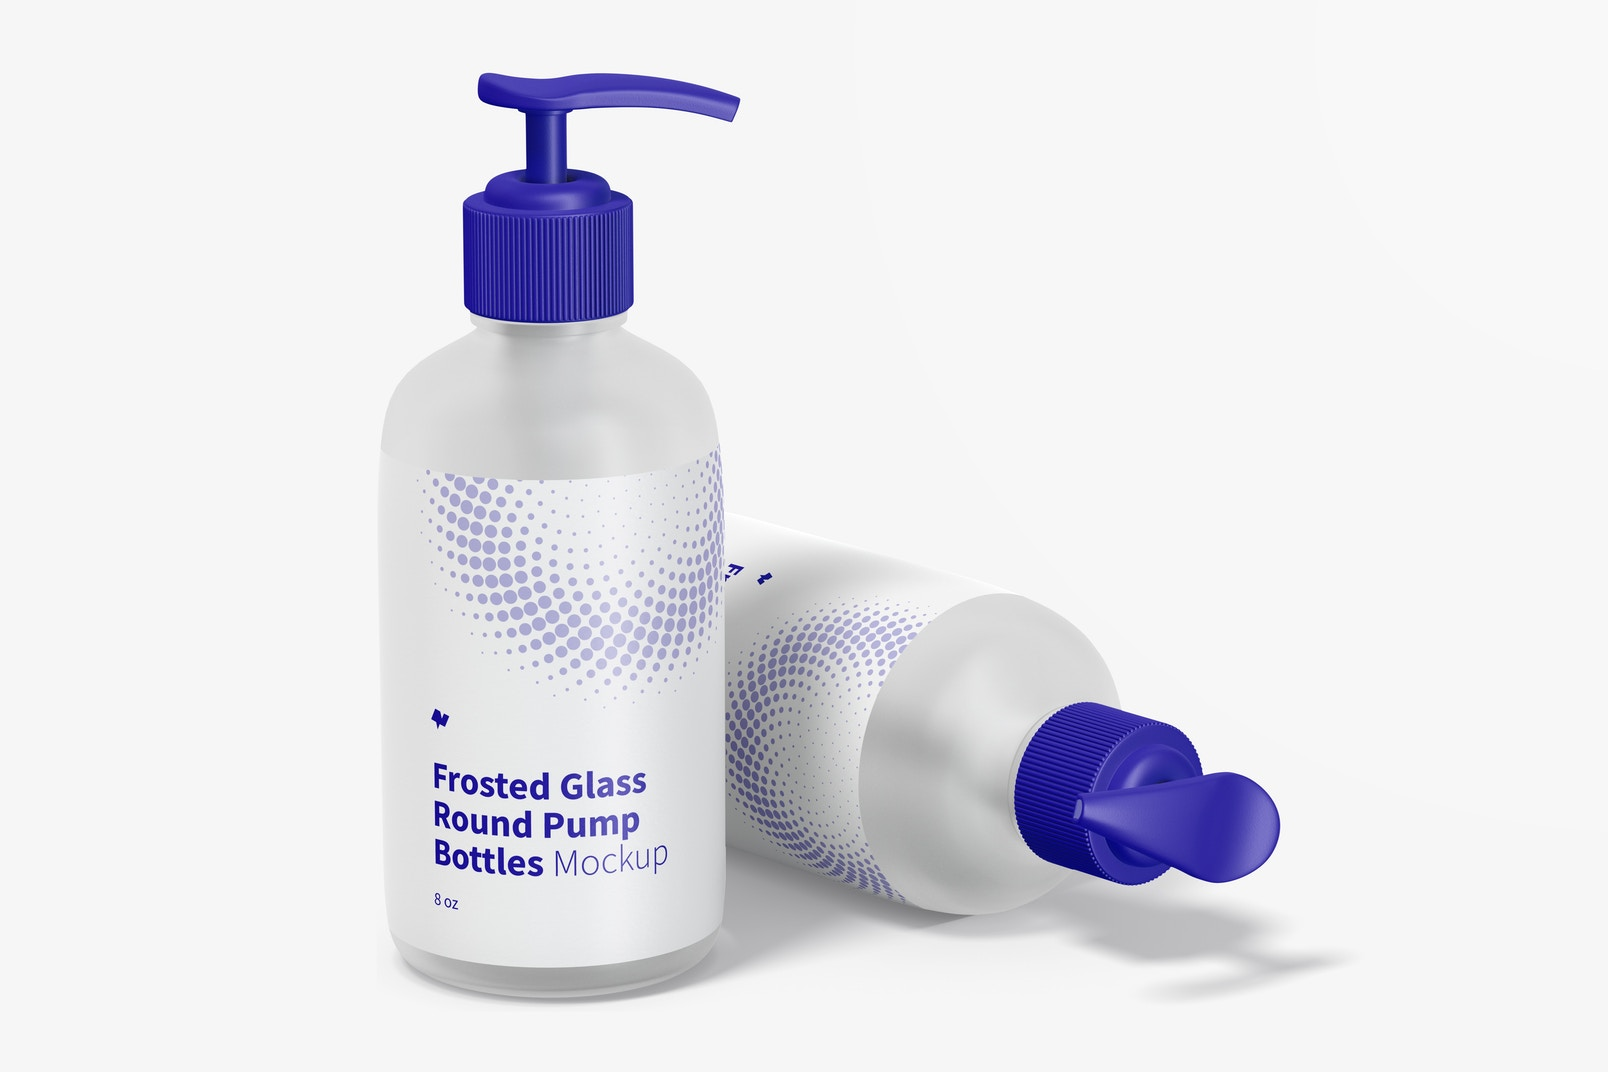 8 oz Frosted Glass Round Pump Bottles Mockup